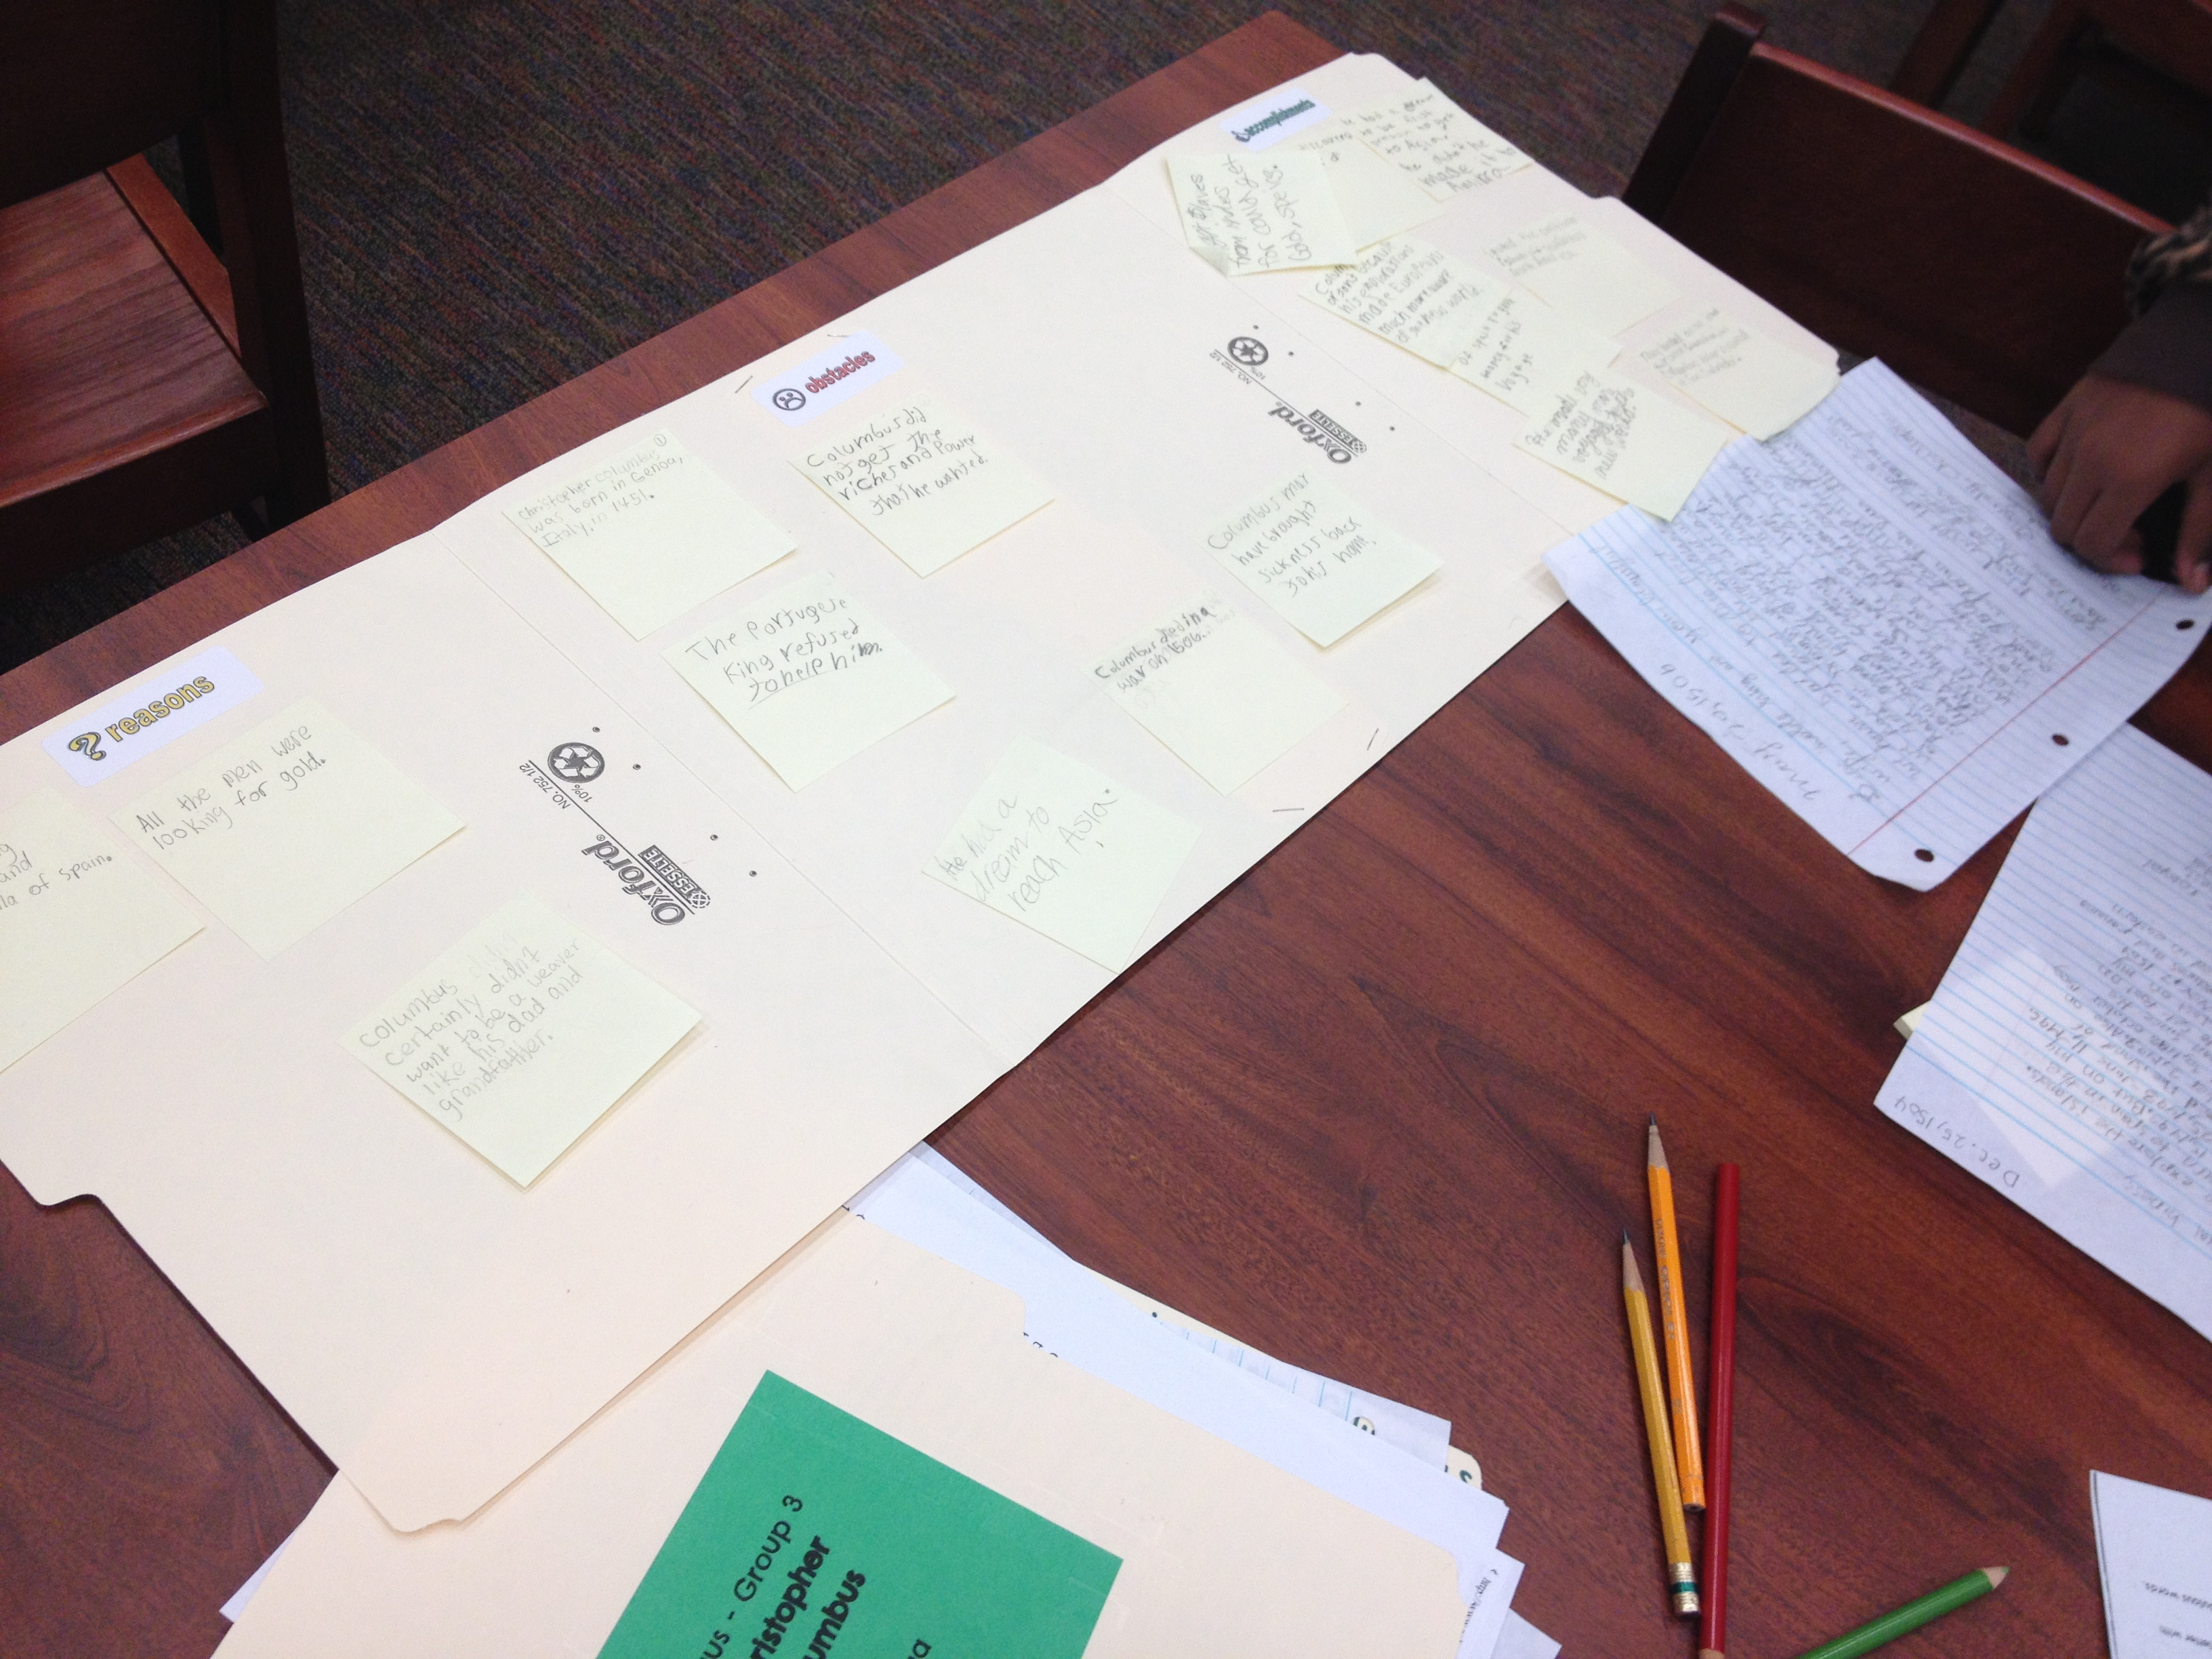 The file folders served as both a graphic organizer and an easy way to